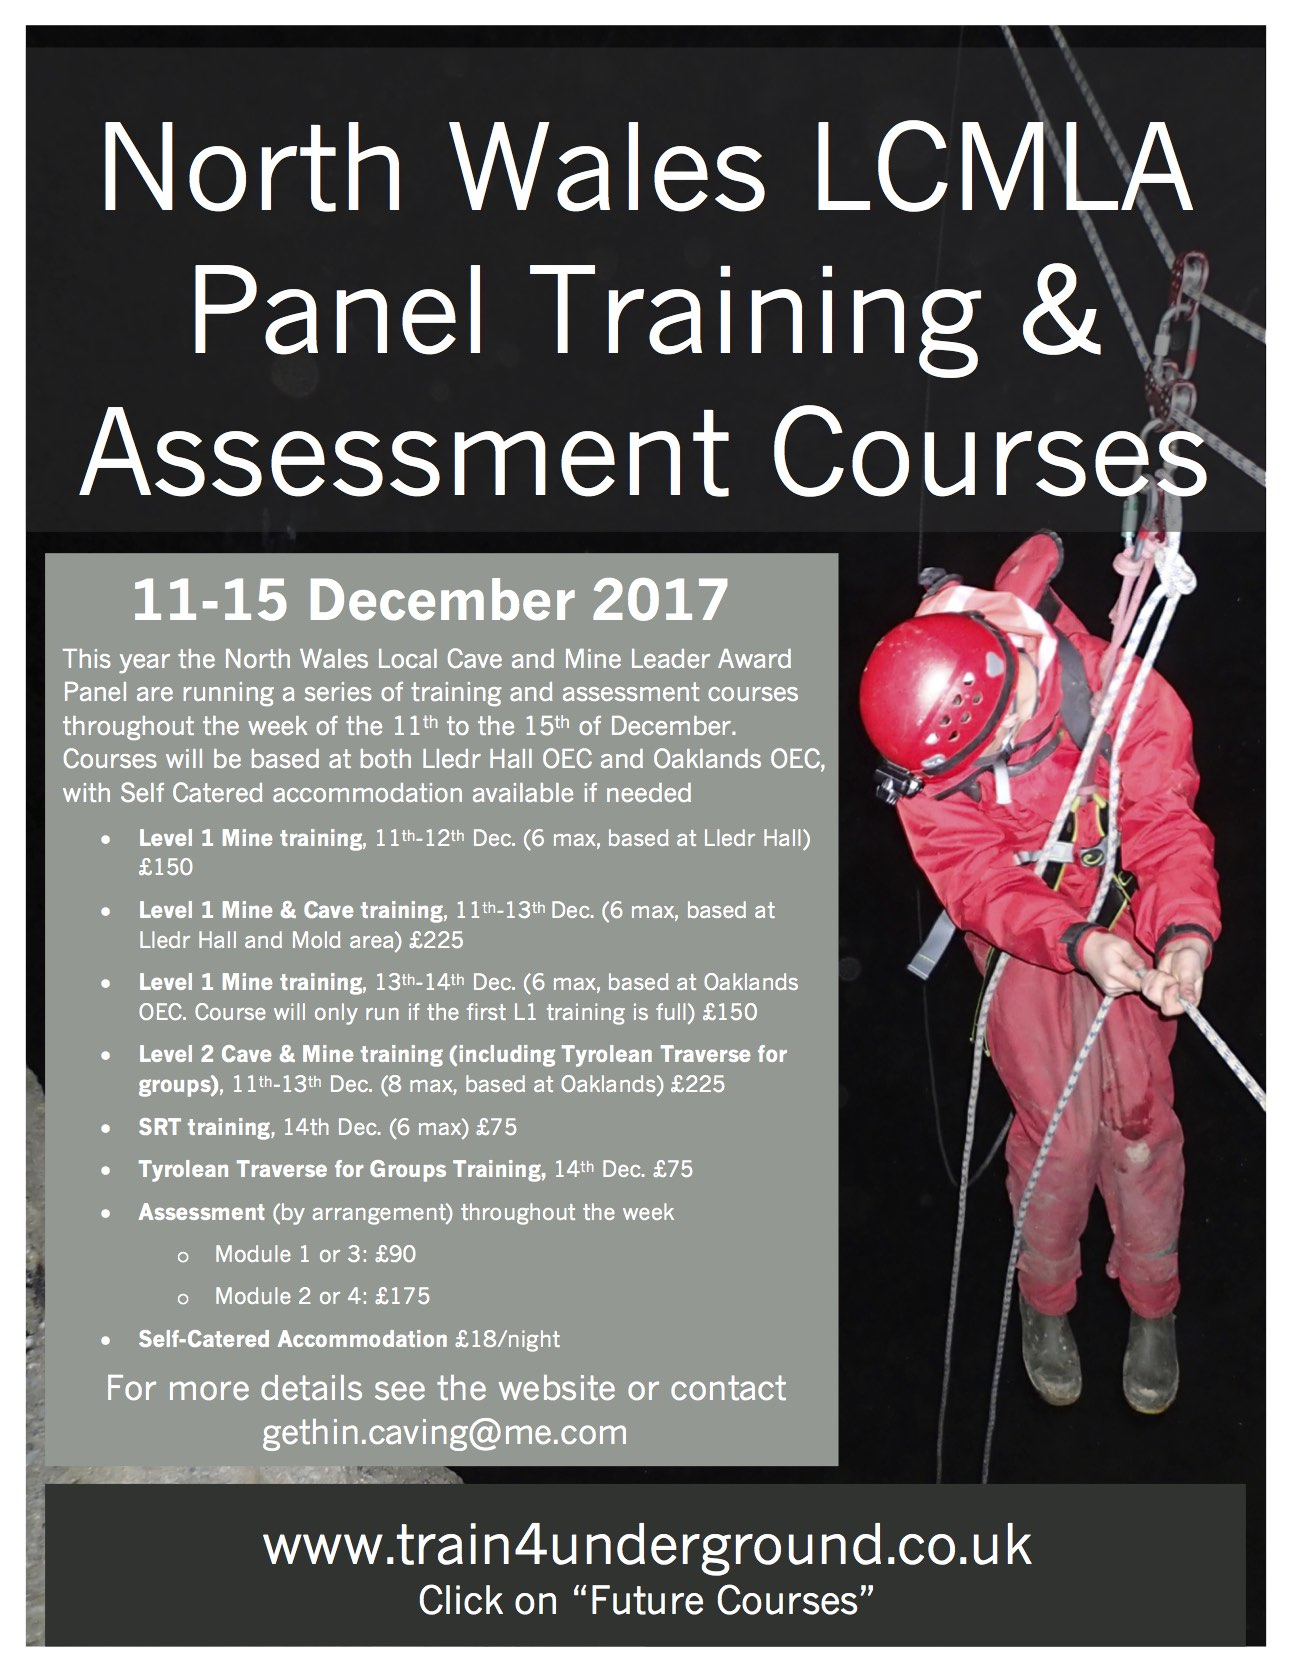 North Wales Panel Courses; 11th-15th December 2017